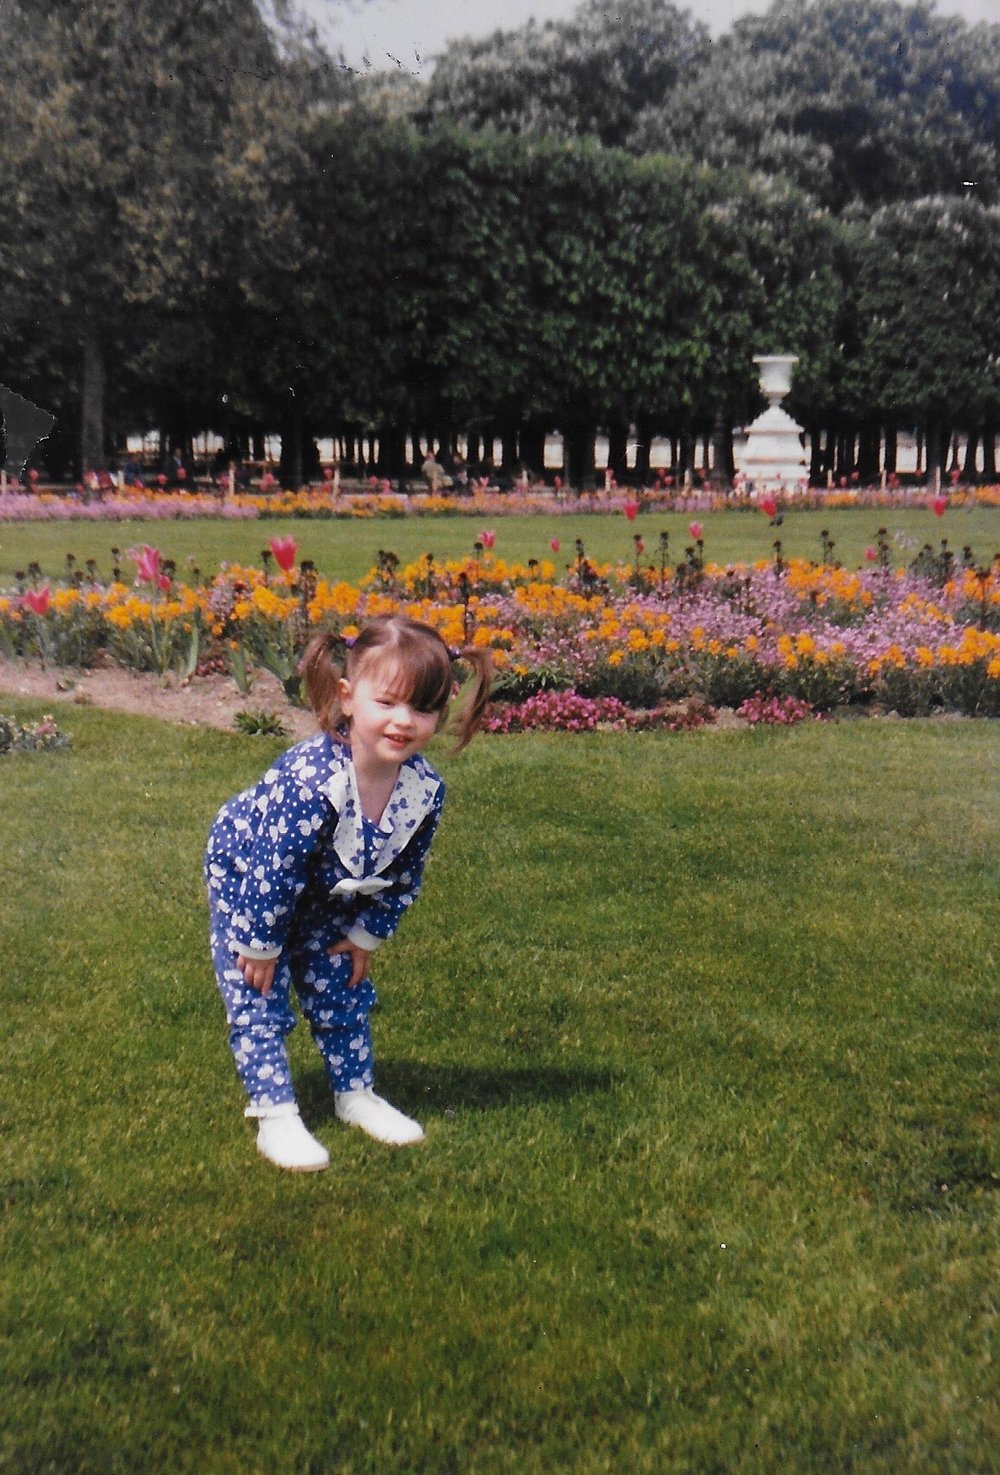 Me in Luxembourg Gardens circa 1994